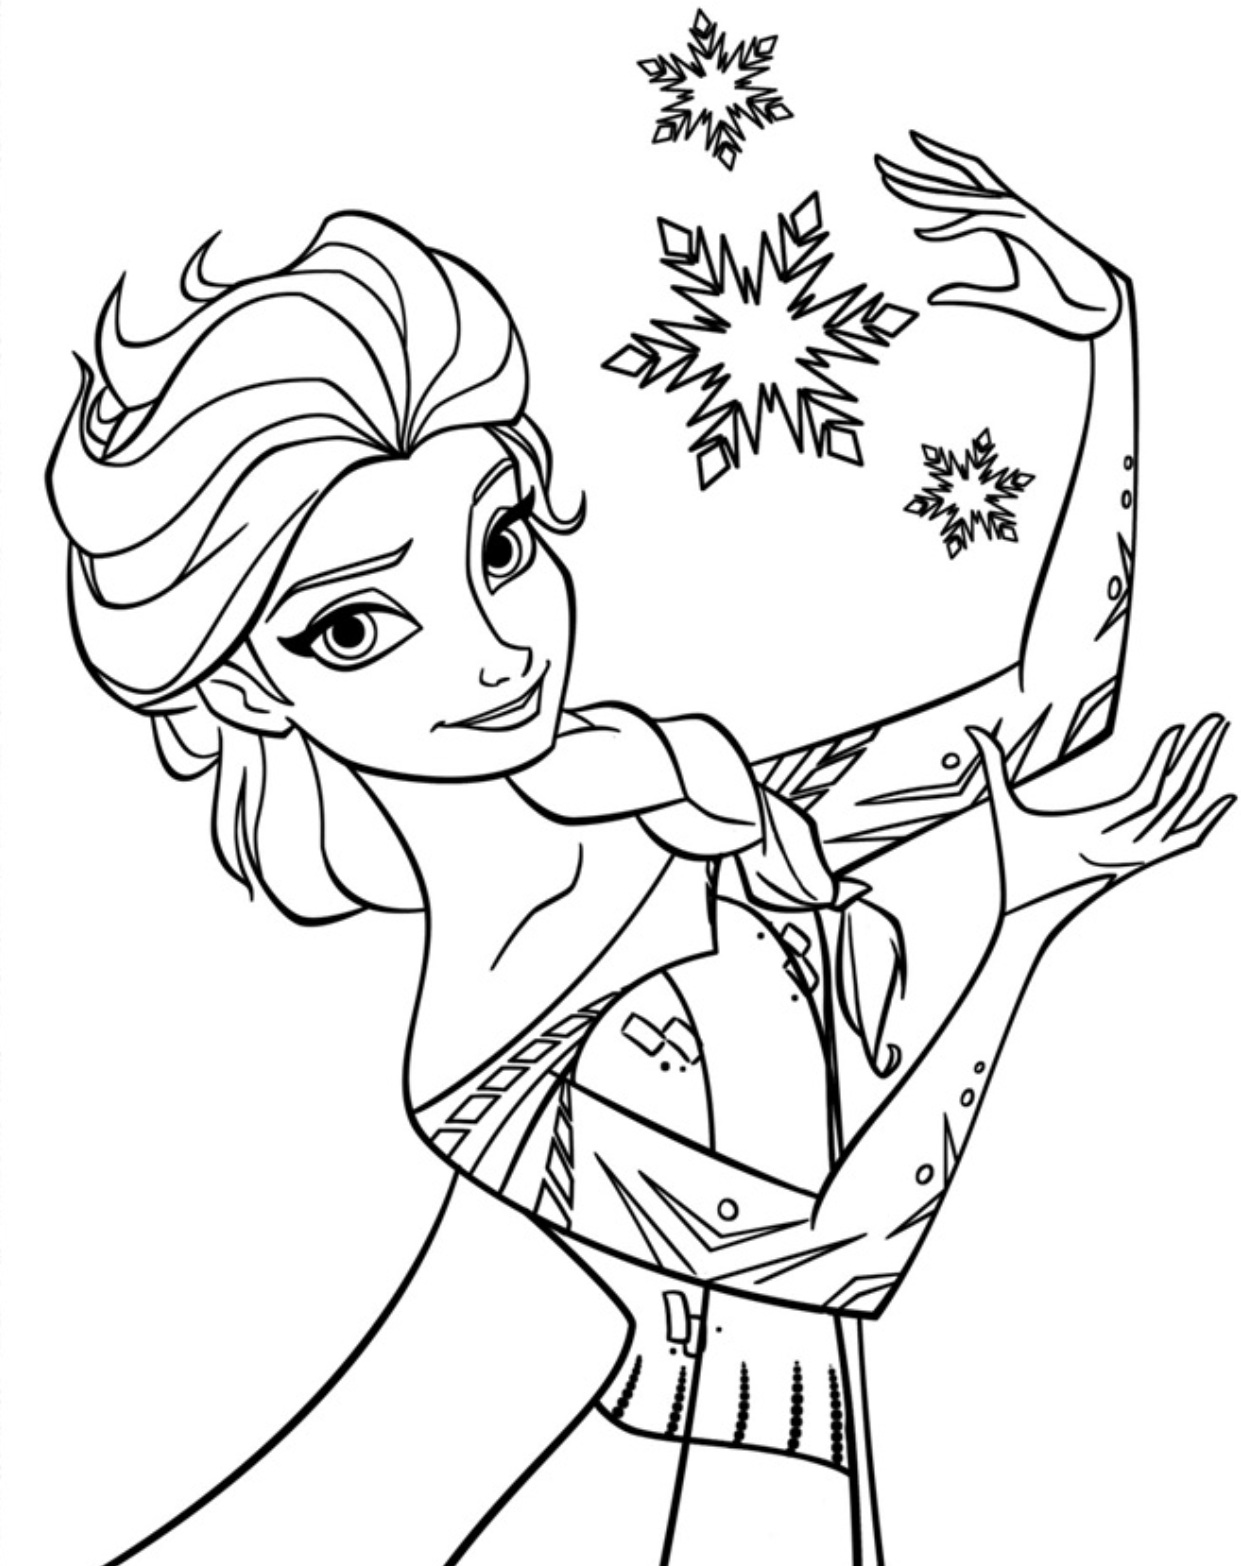 coloring pages for kids online free printable tangled coloring pages for kids kids coloring pages for online